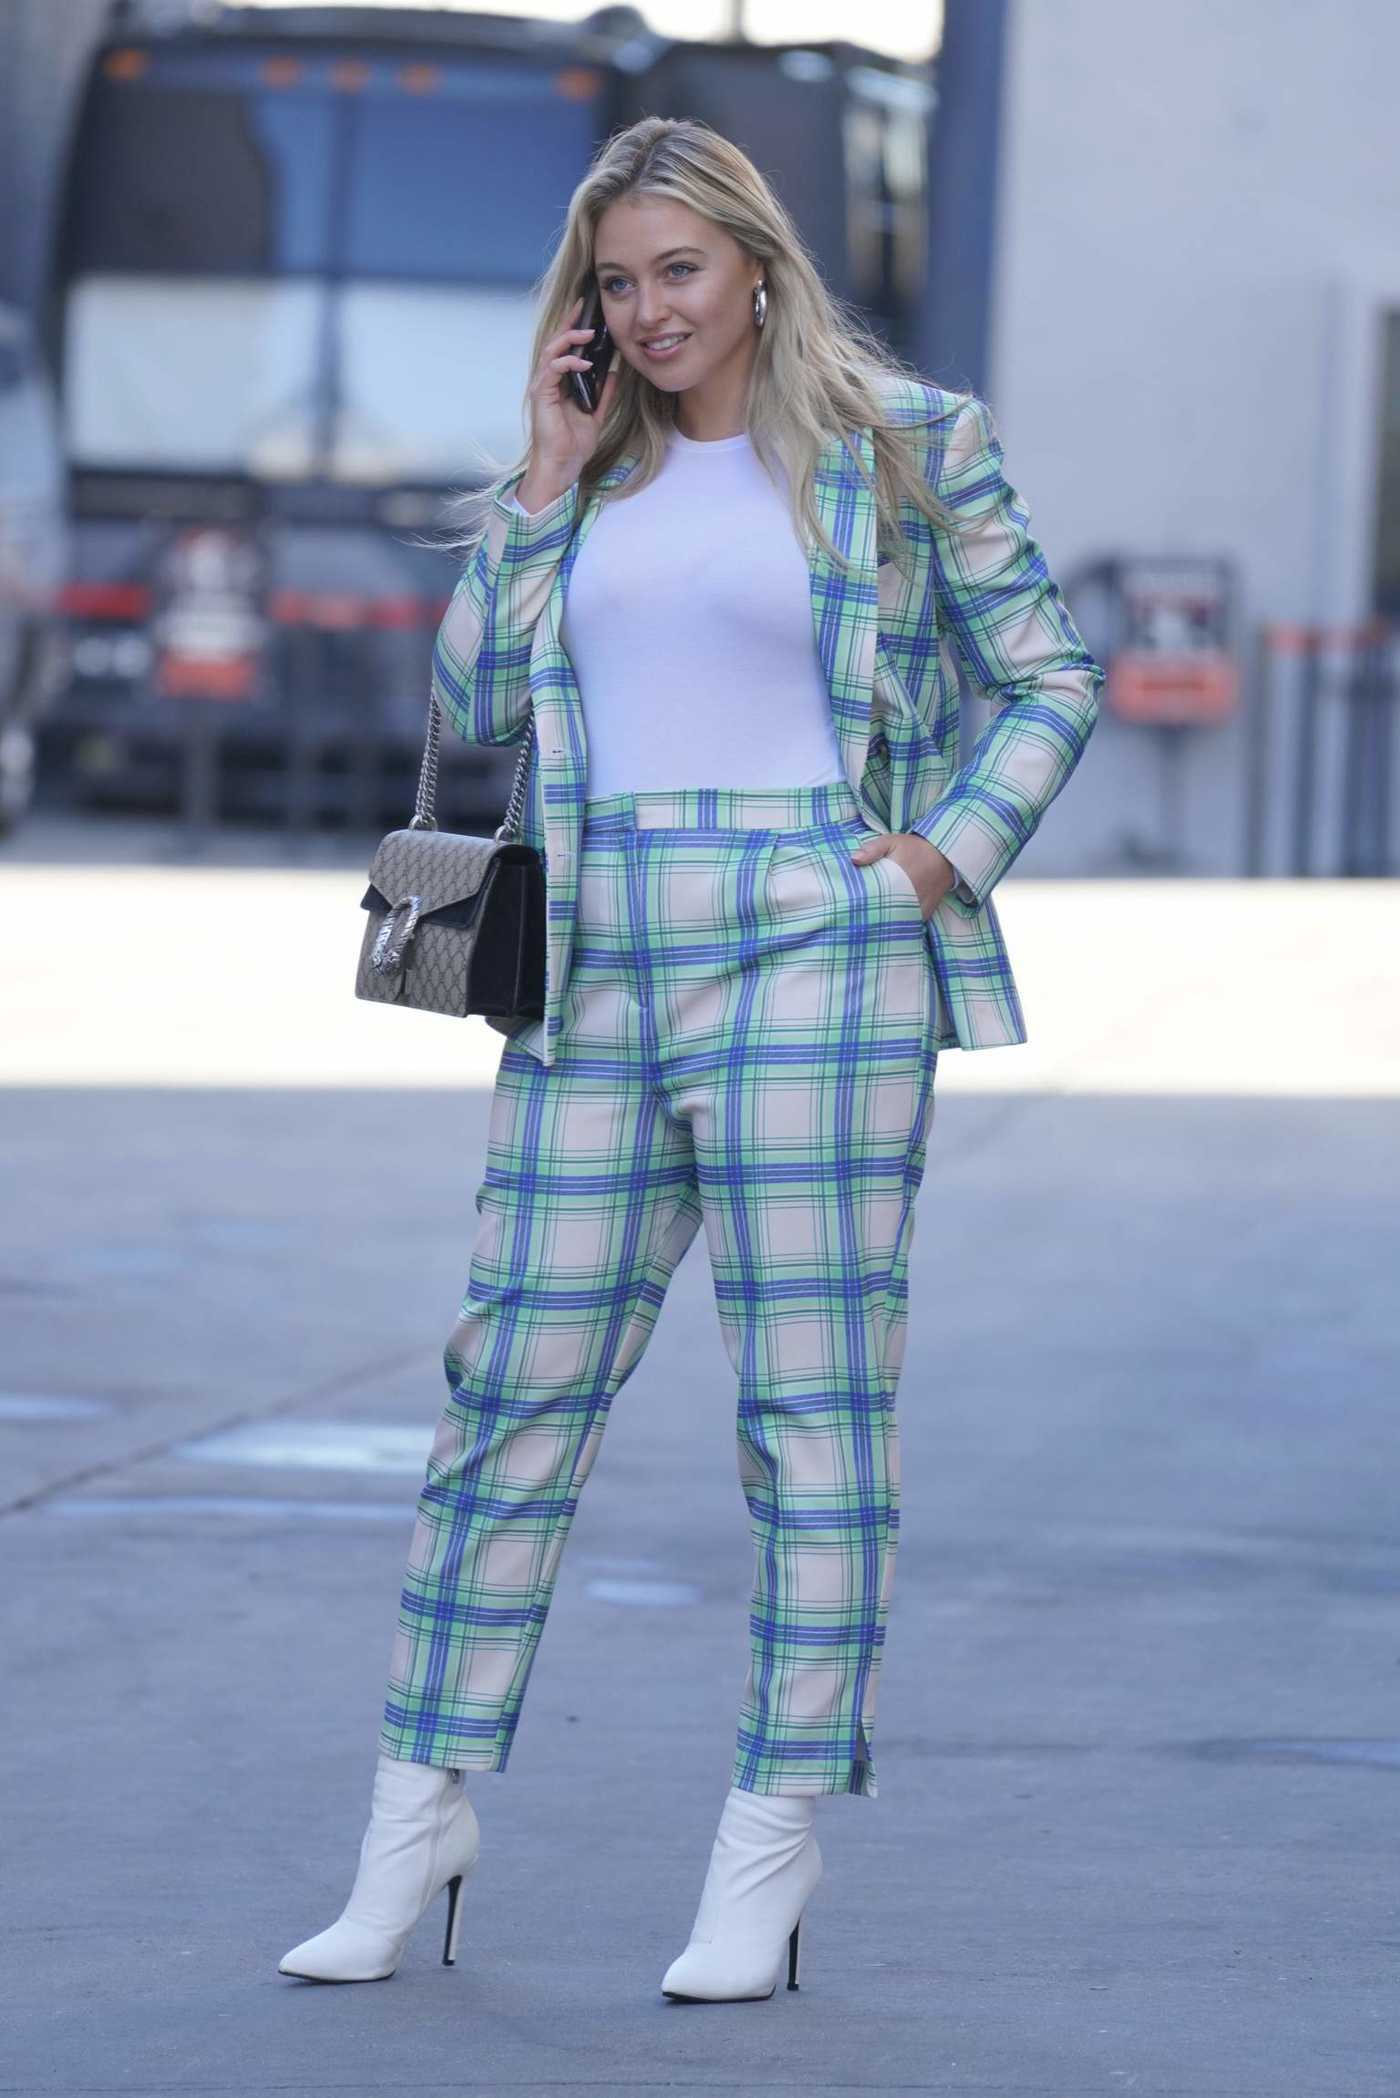 Iskra Lawrence in a Plaid Suit Was Seen Out in Los Angeles 01/04/2019